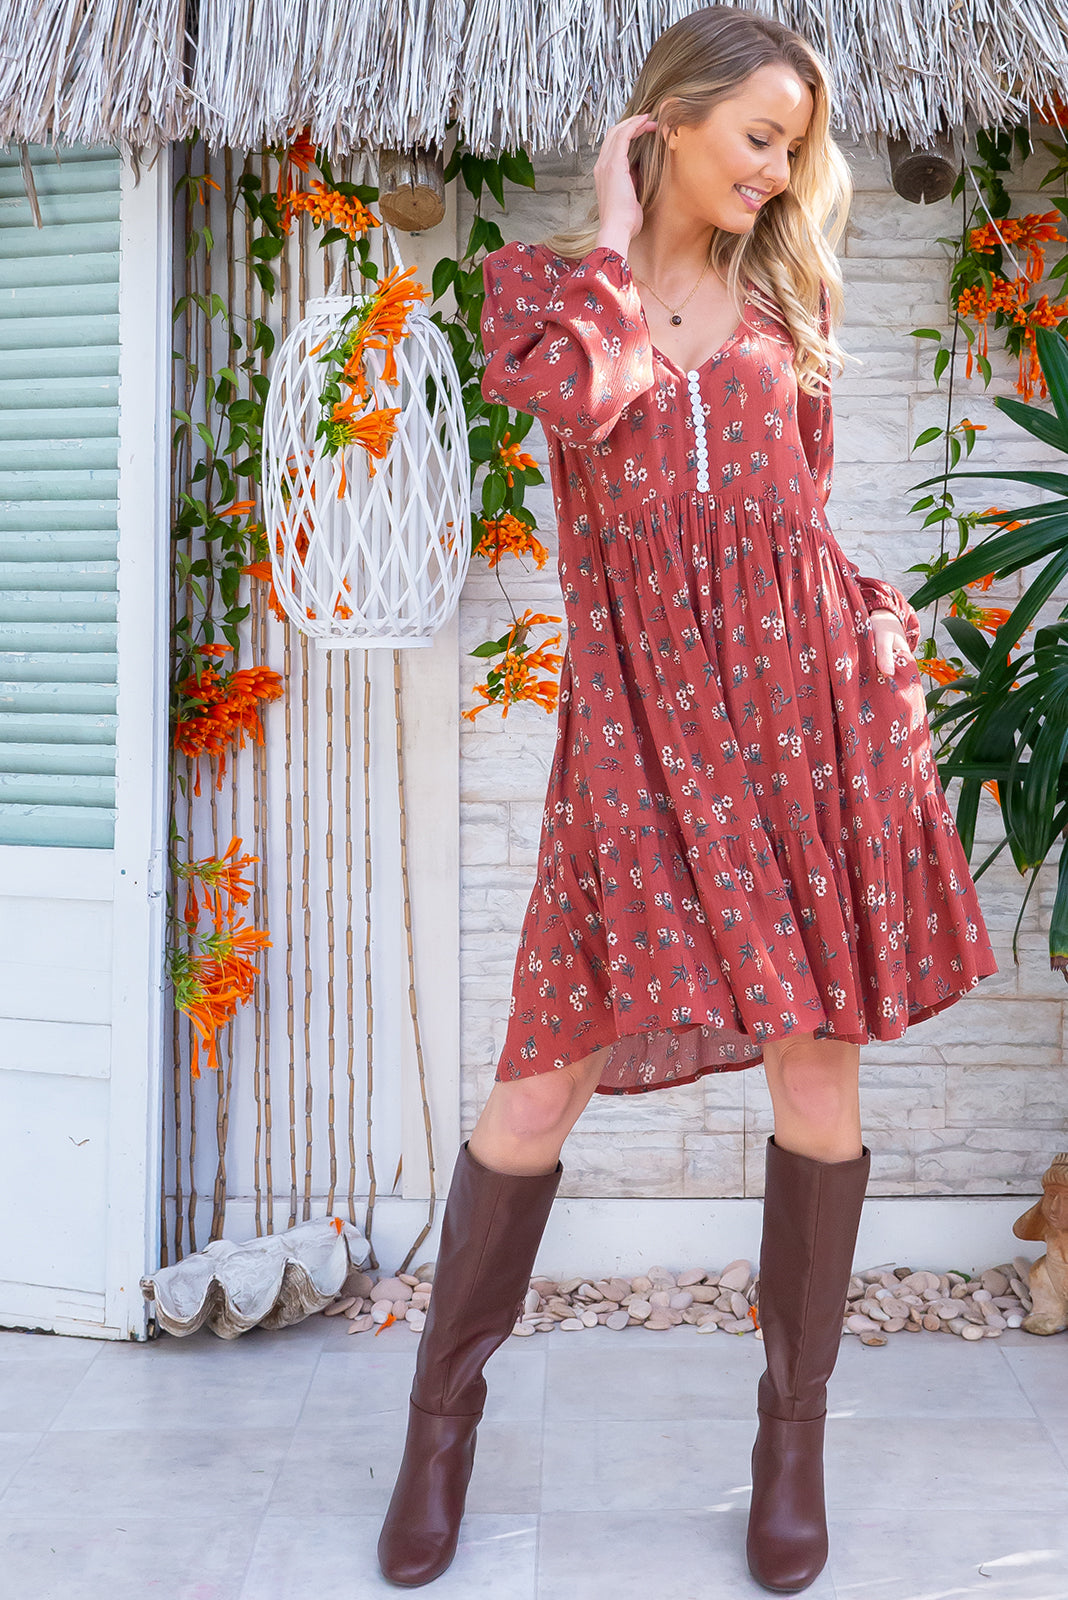 The Woodrose Nutmeg Sprinkle Dress features functional button front chest, side pockets, frill hem and woven 100% crinkle textured rayon in warm, nutmeg base with multi-coloured floral design.